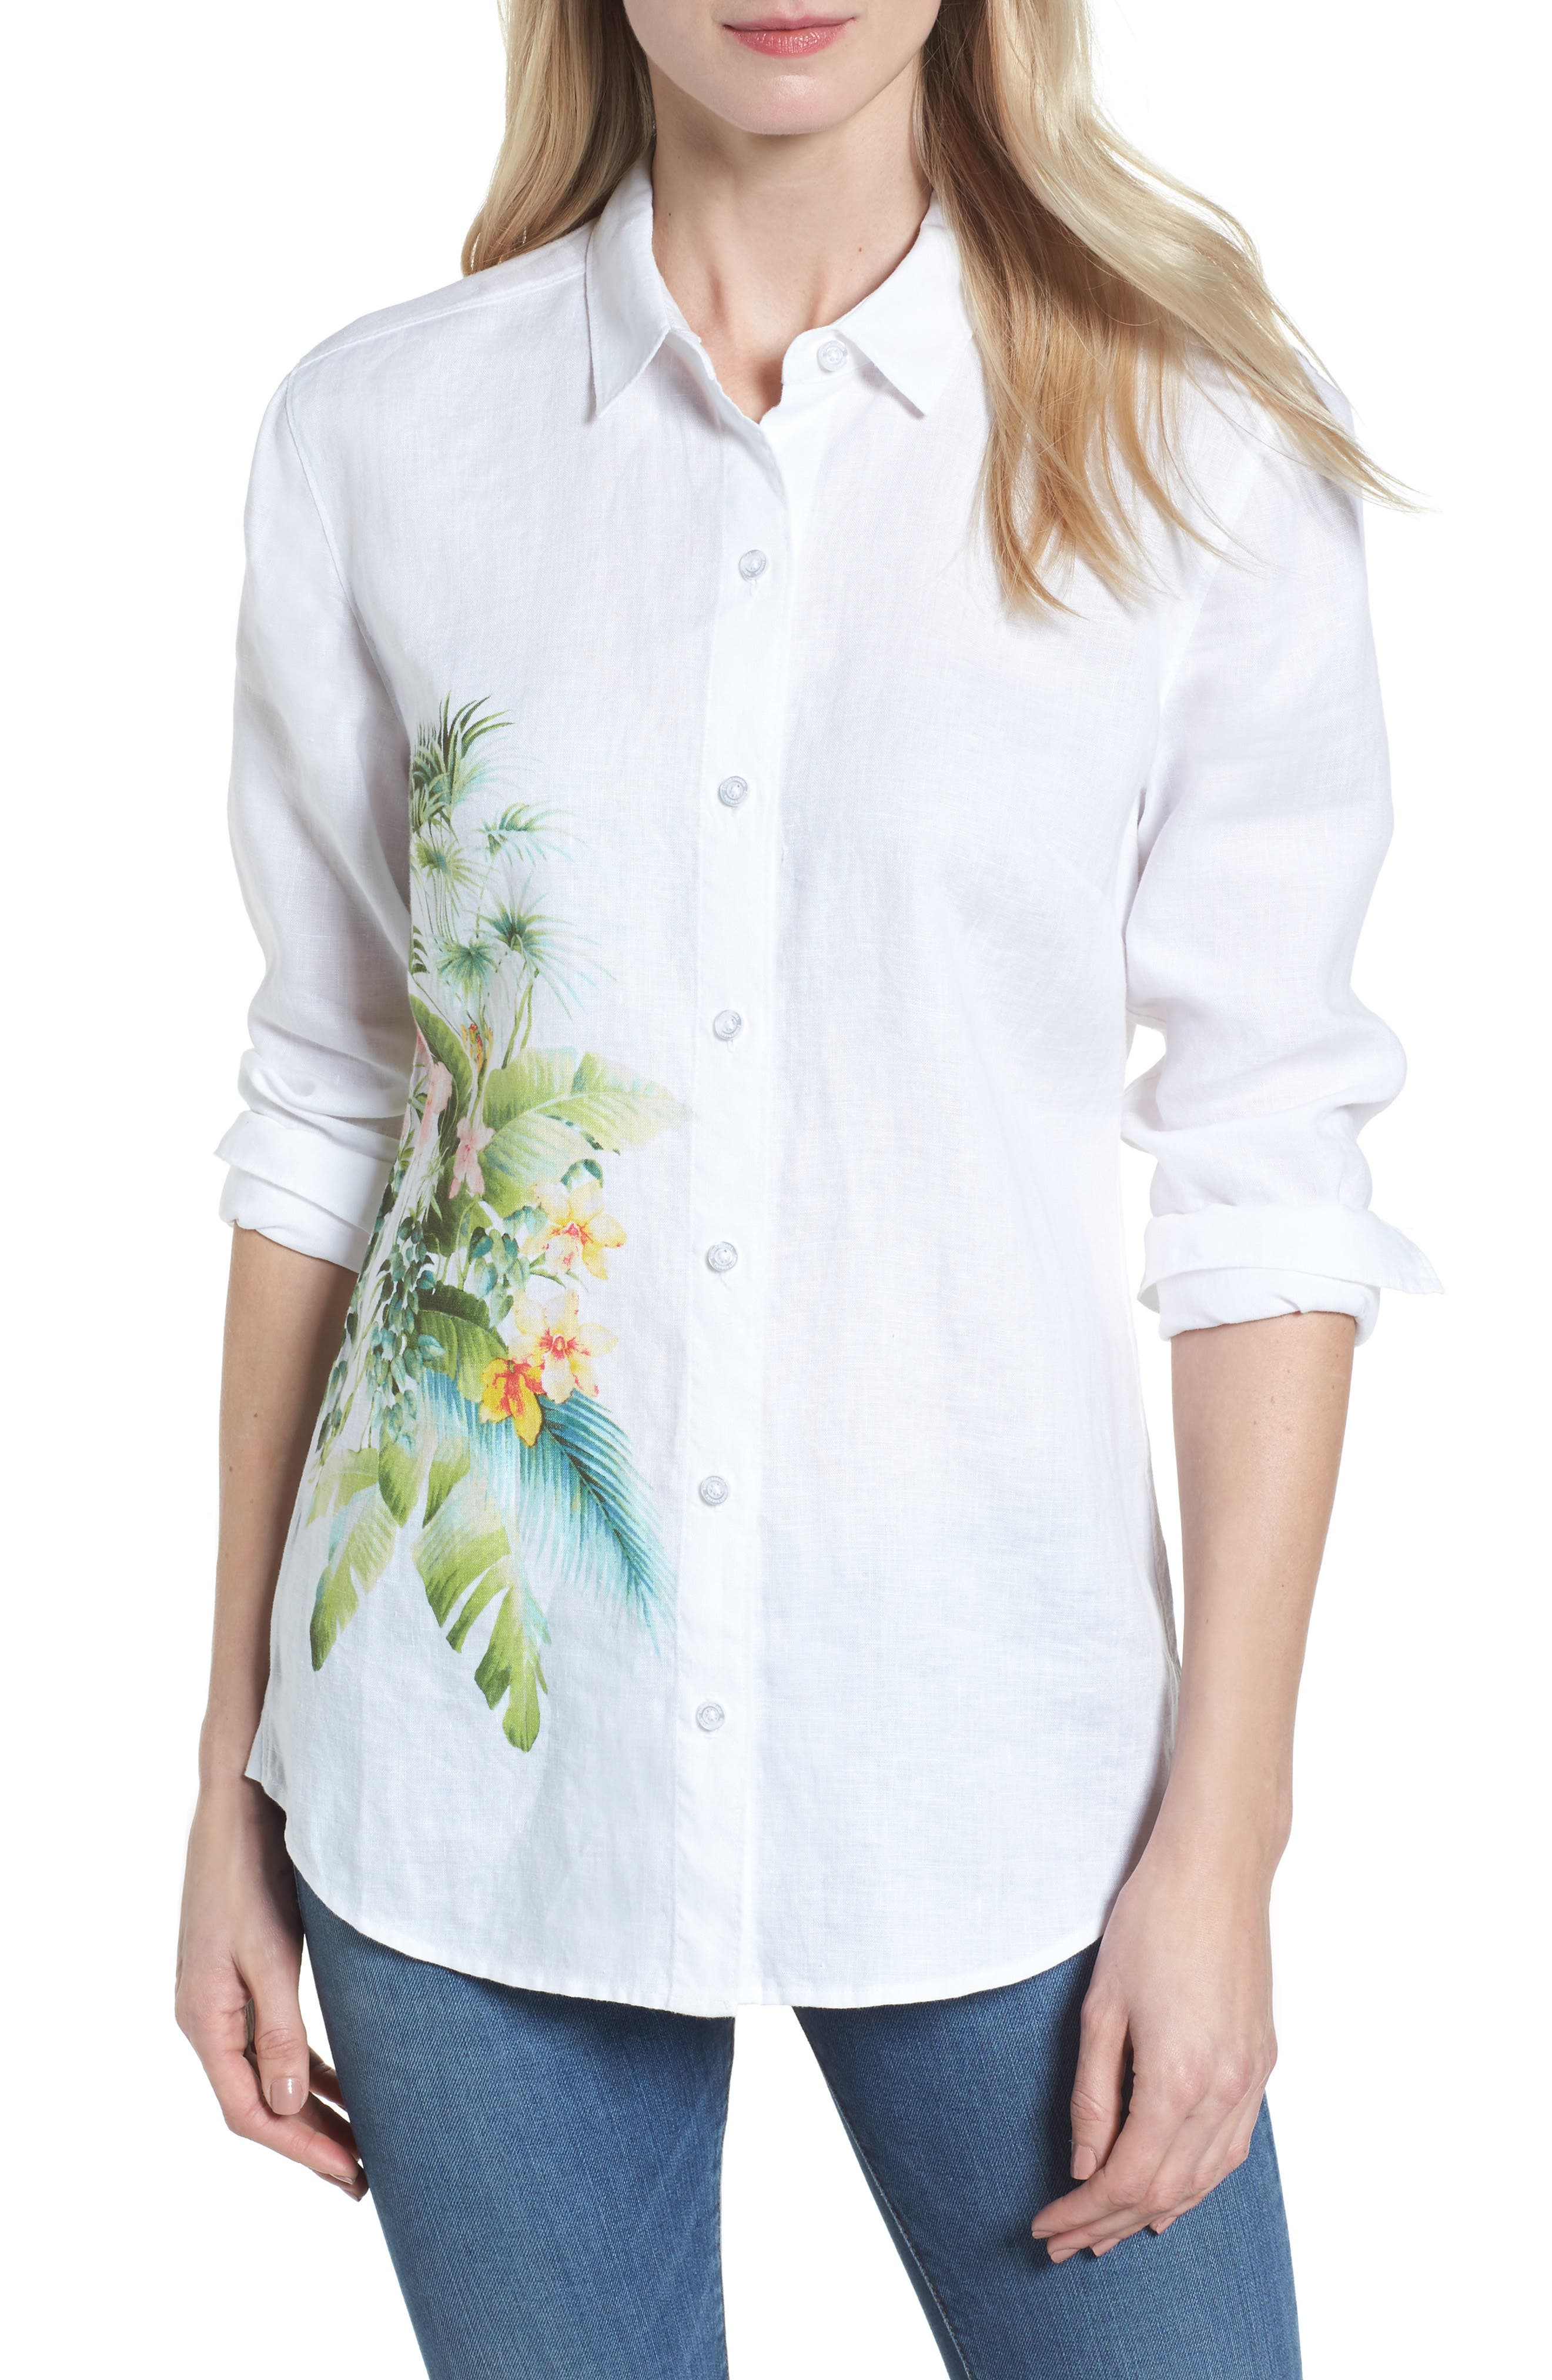 Queen Palms Linen Shirt,                         Main,                         color, White